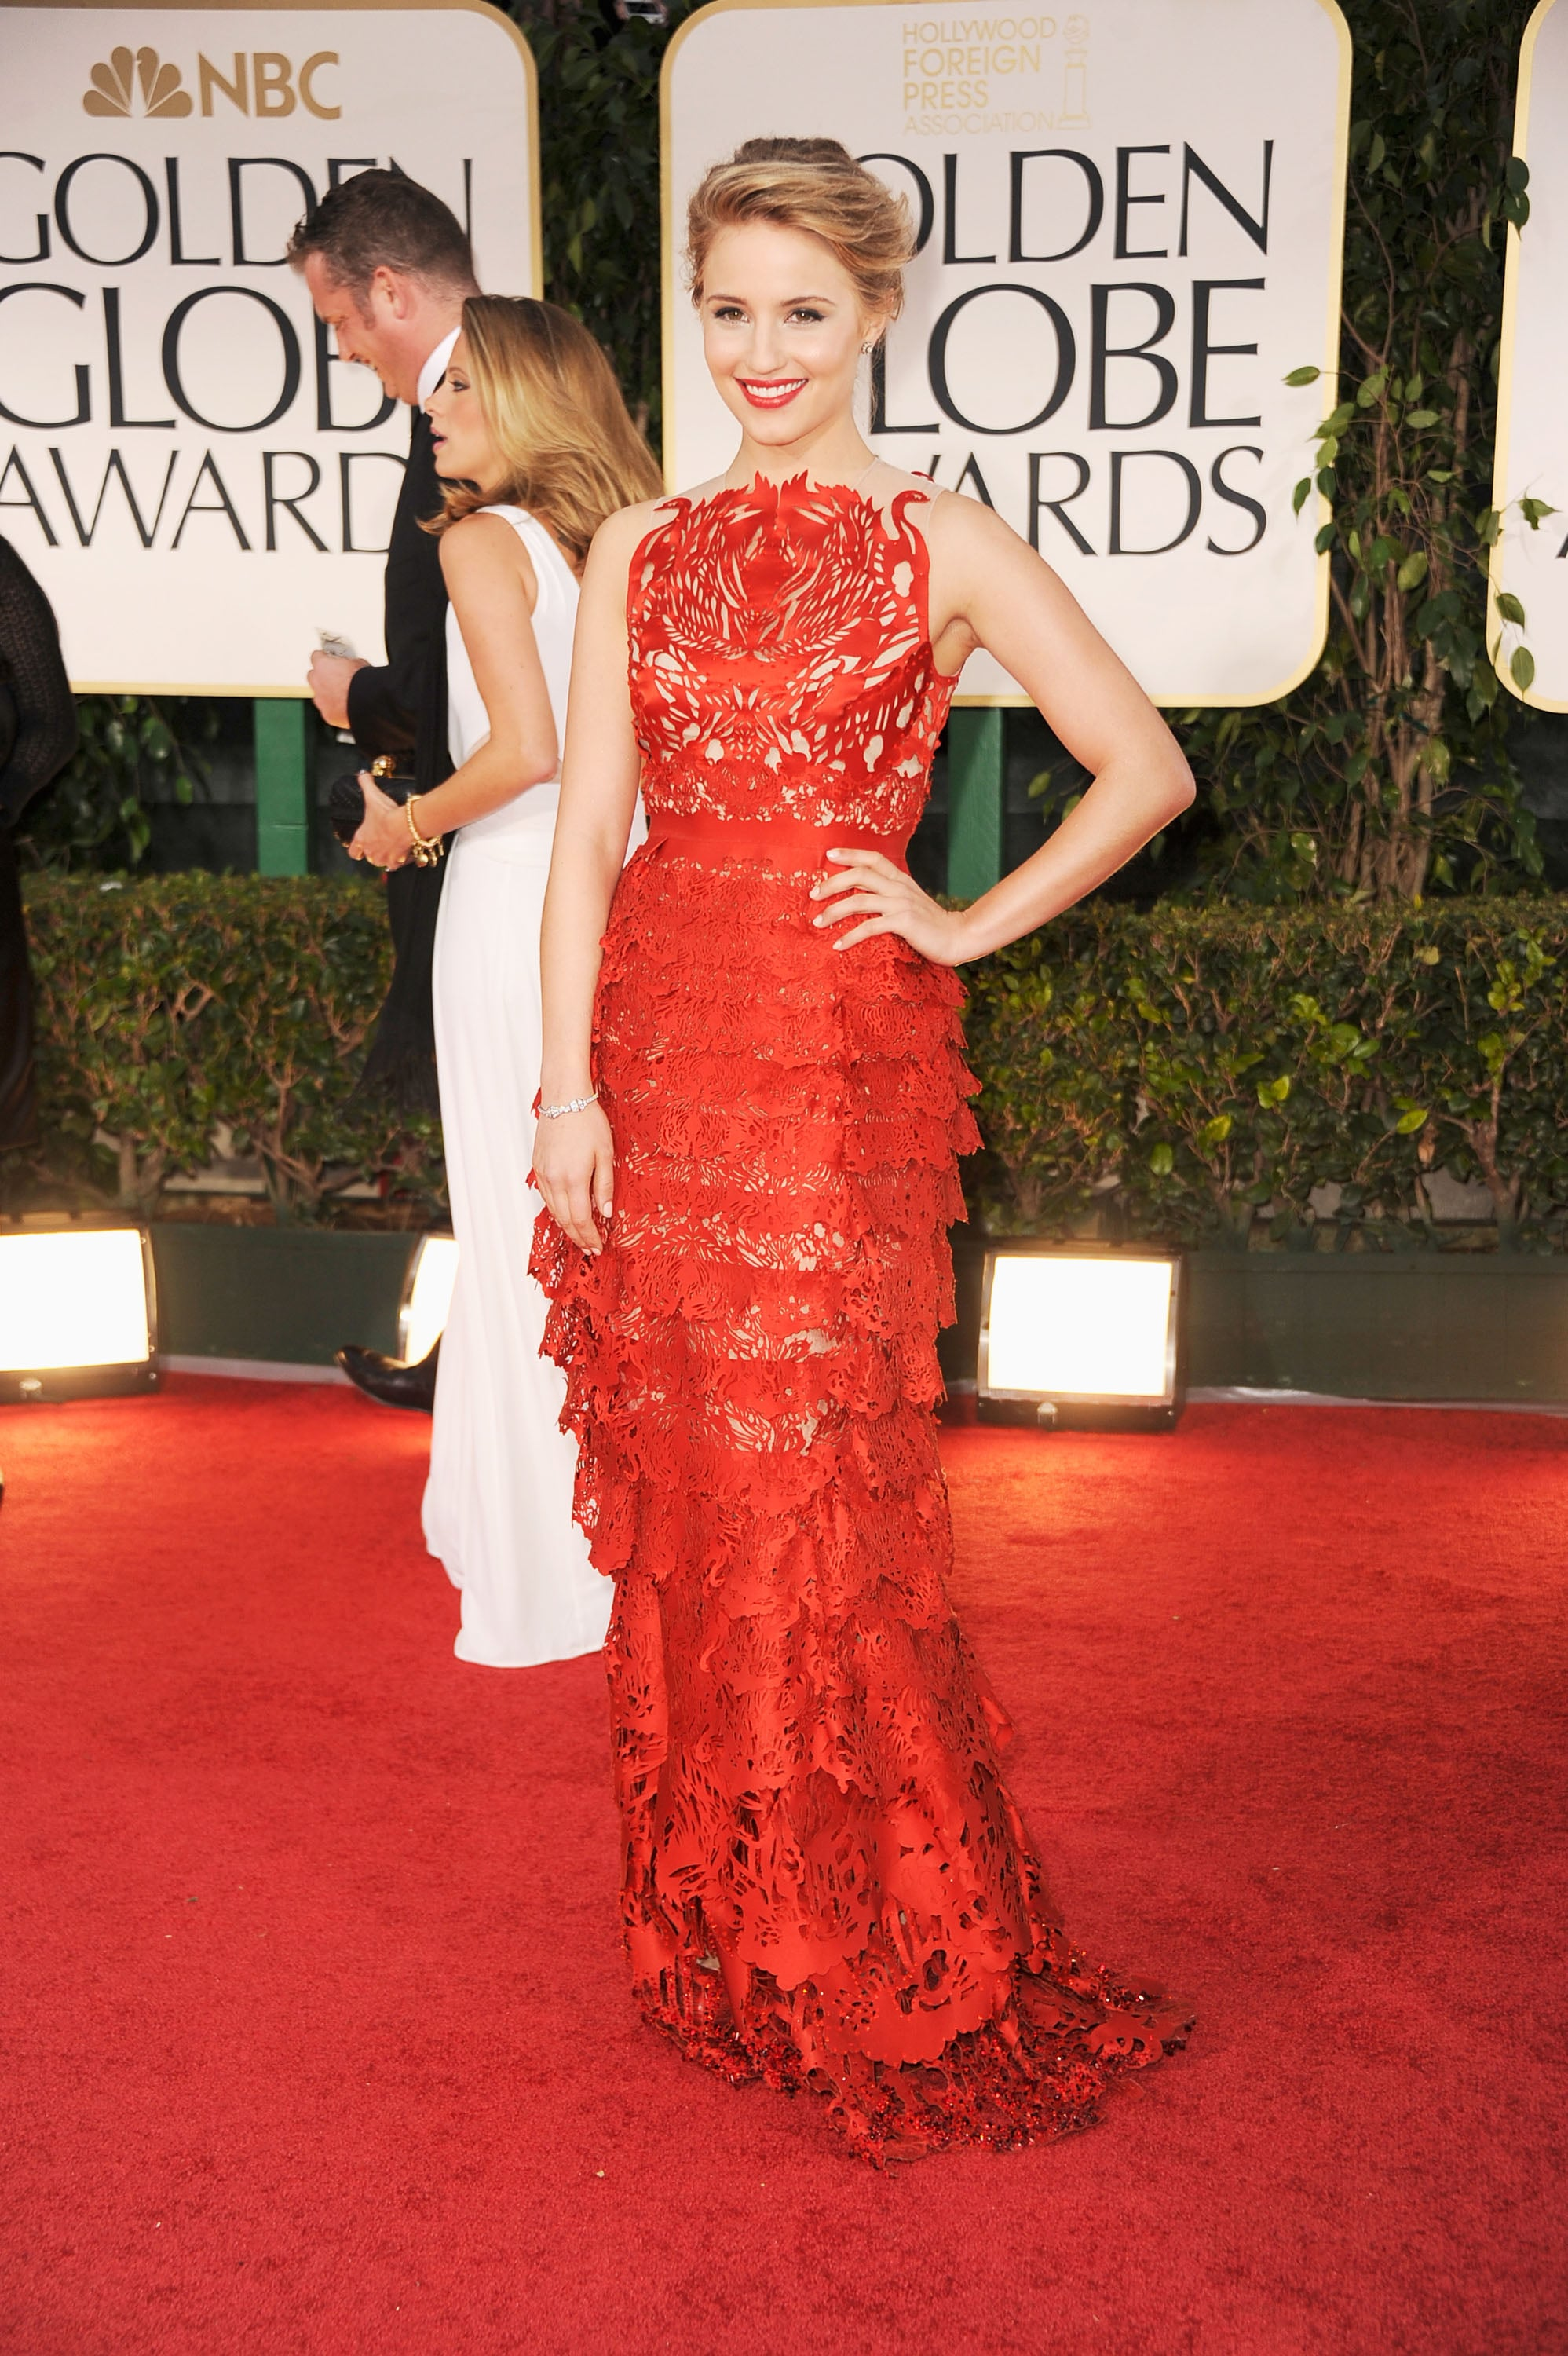 Golden globes 2012 red carpet dress pictures popsugar celebrity australia - Golden globes red carpet ...